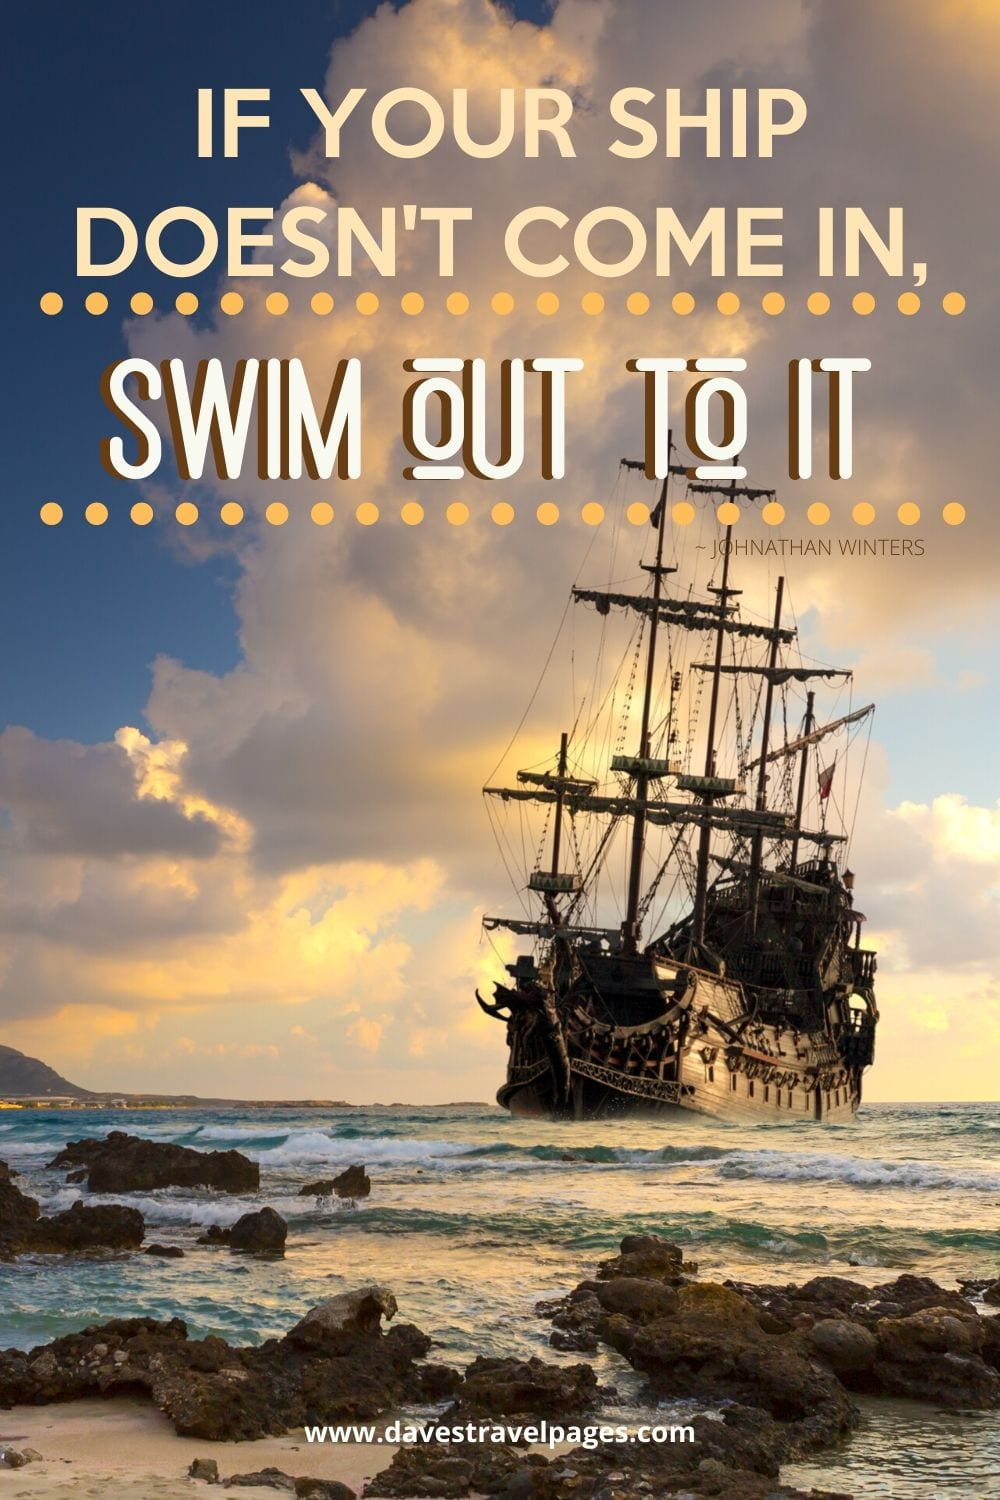 """IF YOUR SHIP DOESN'T COME IN, SWIM OUT TO IT."""" ~ JOHNATHAN WINTERS"""